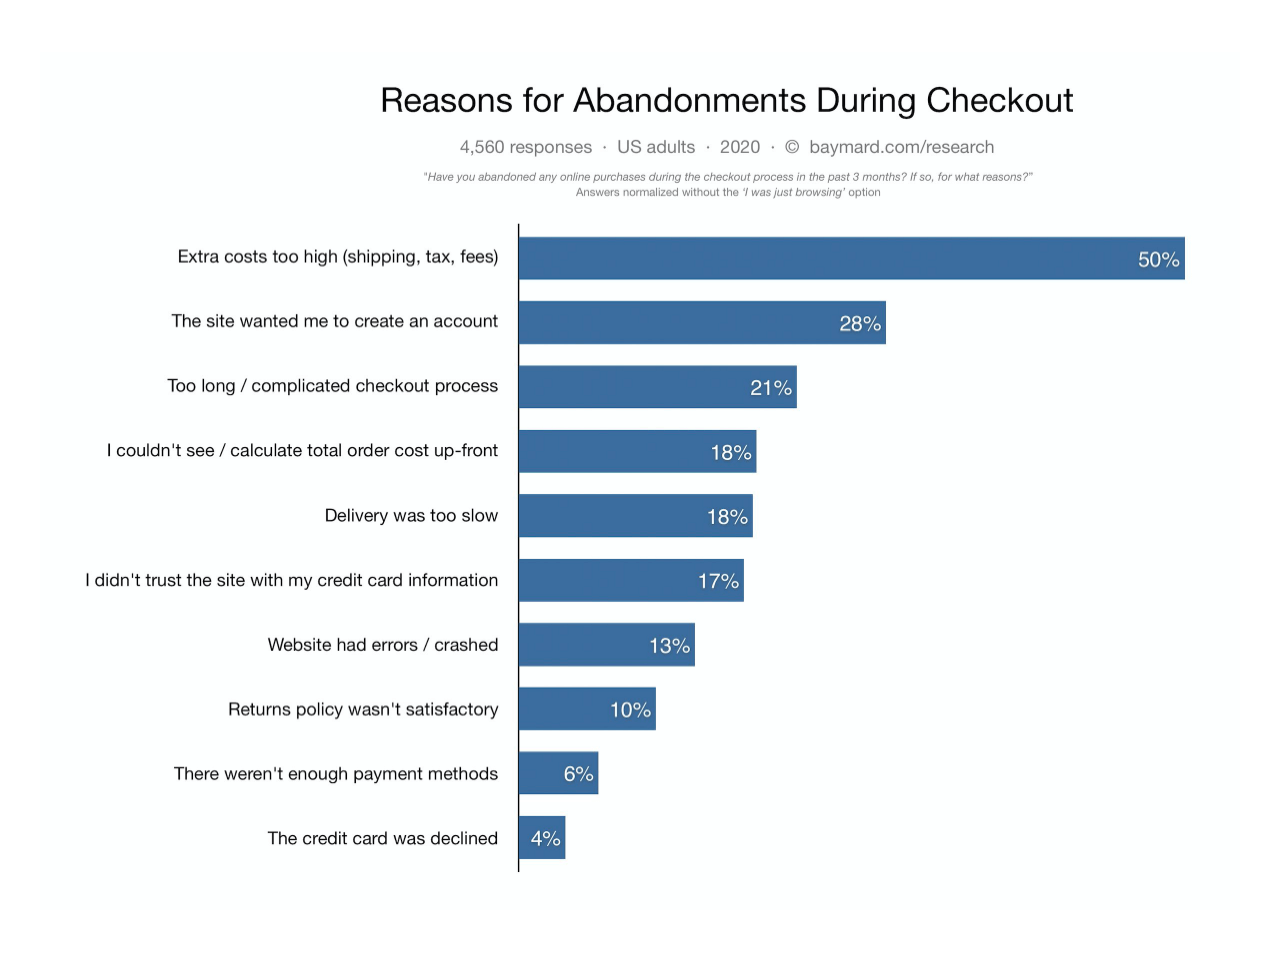 Shopping cart abandonment statistics collected by the Baymard Institute